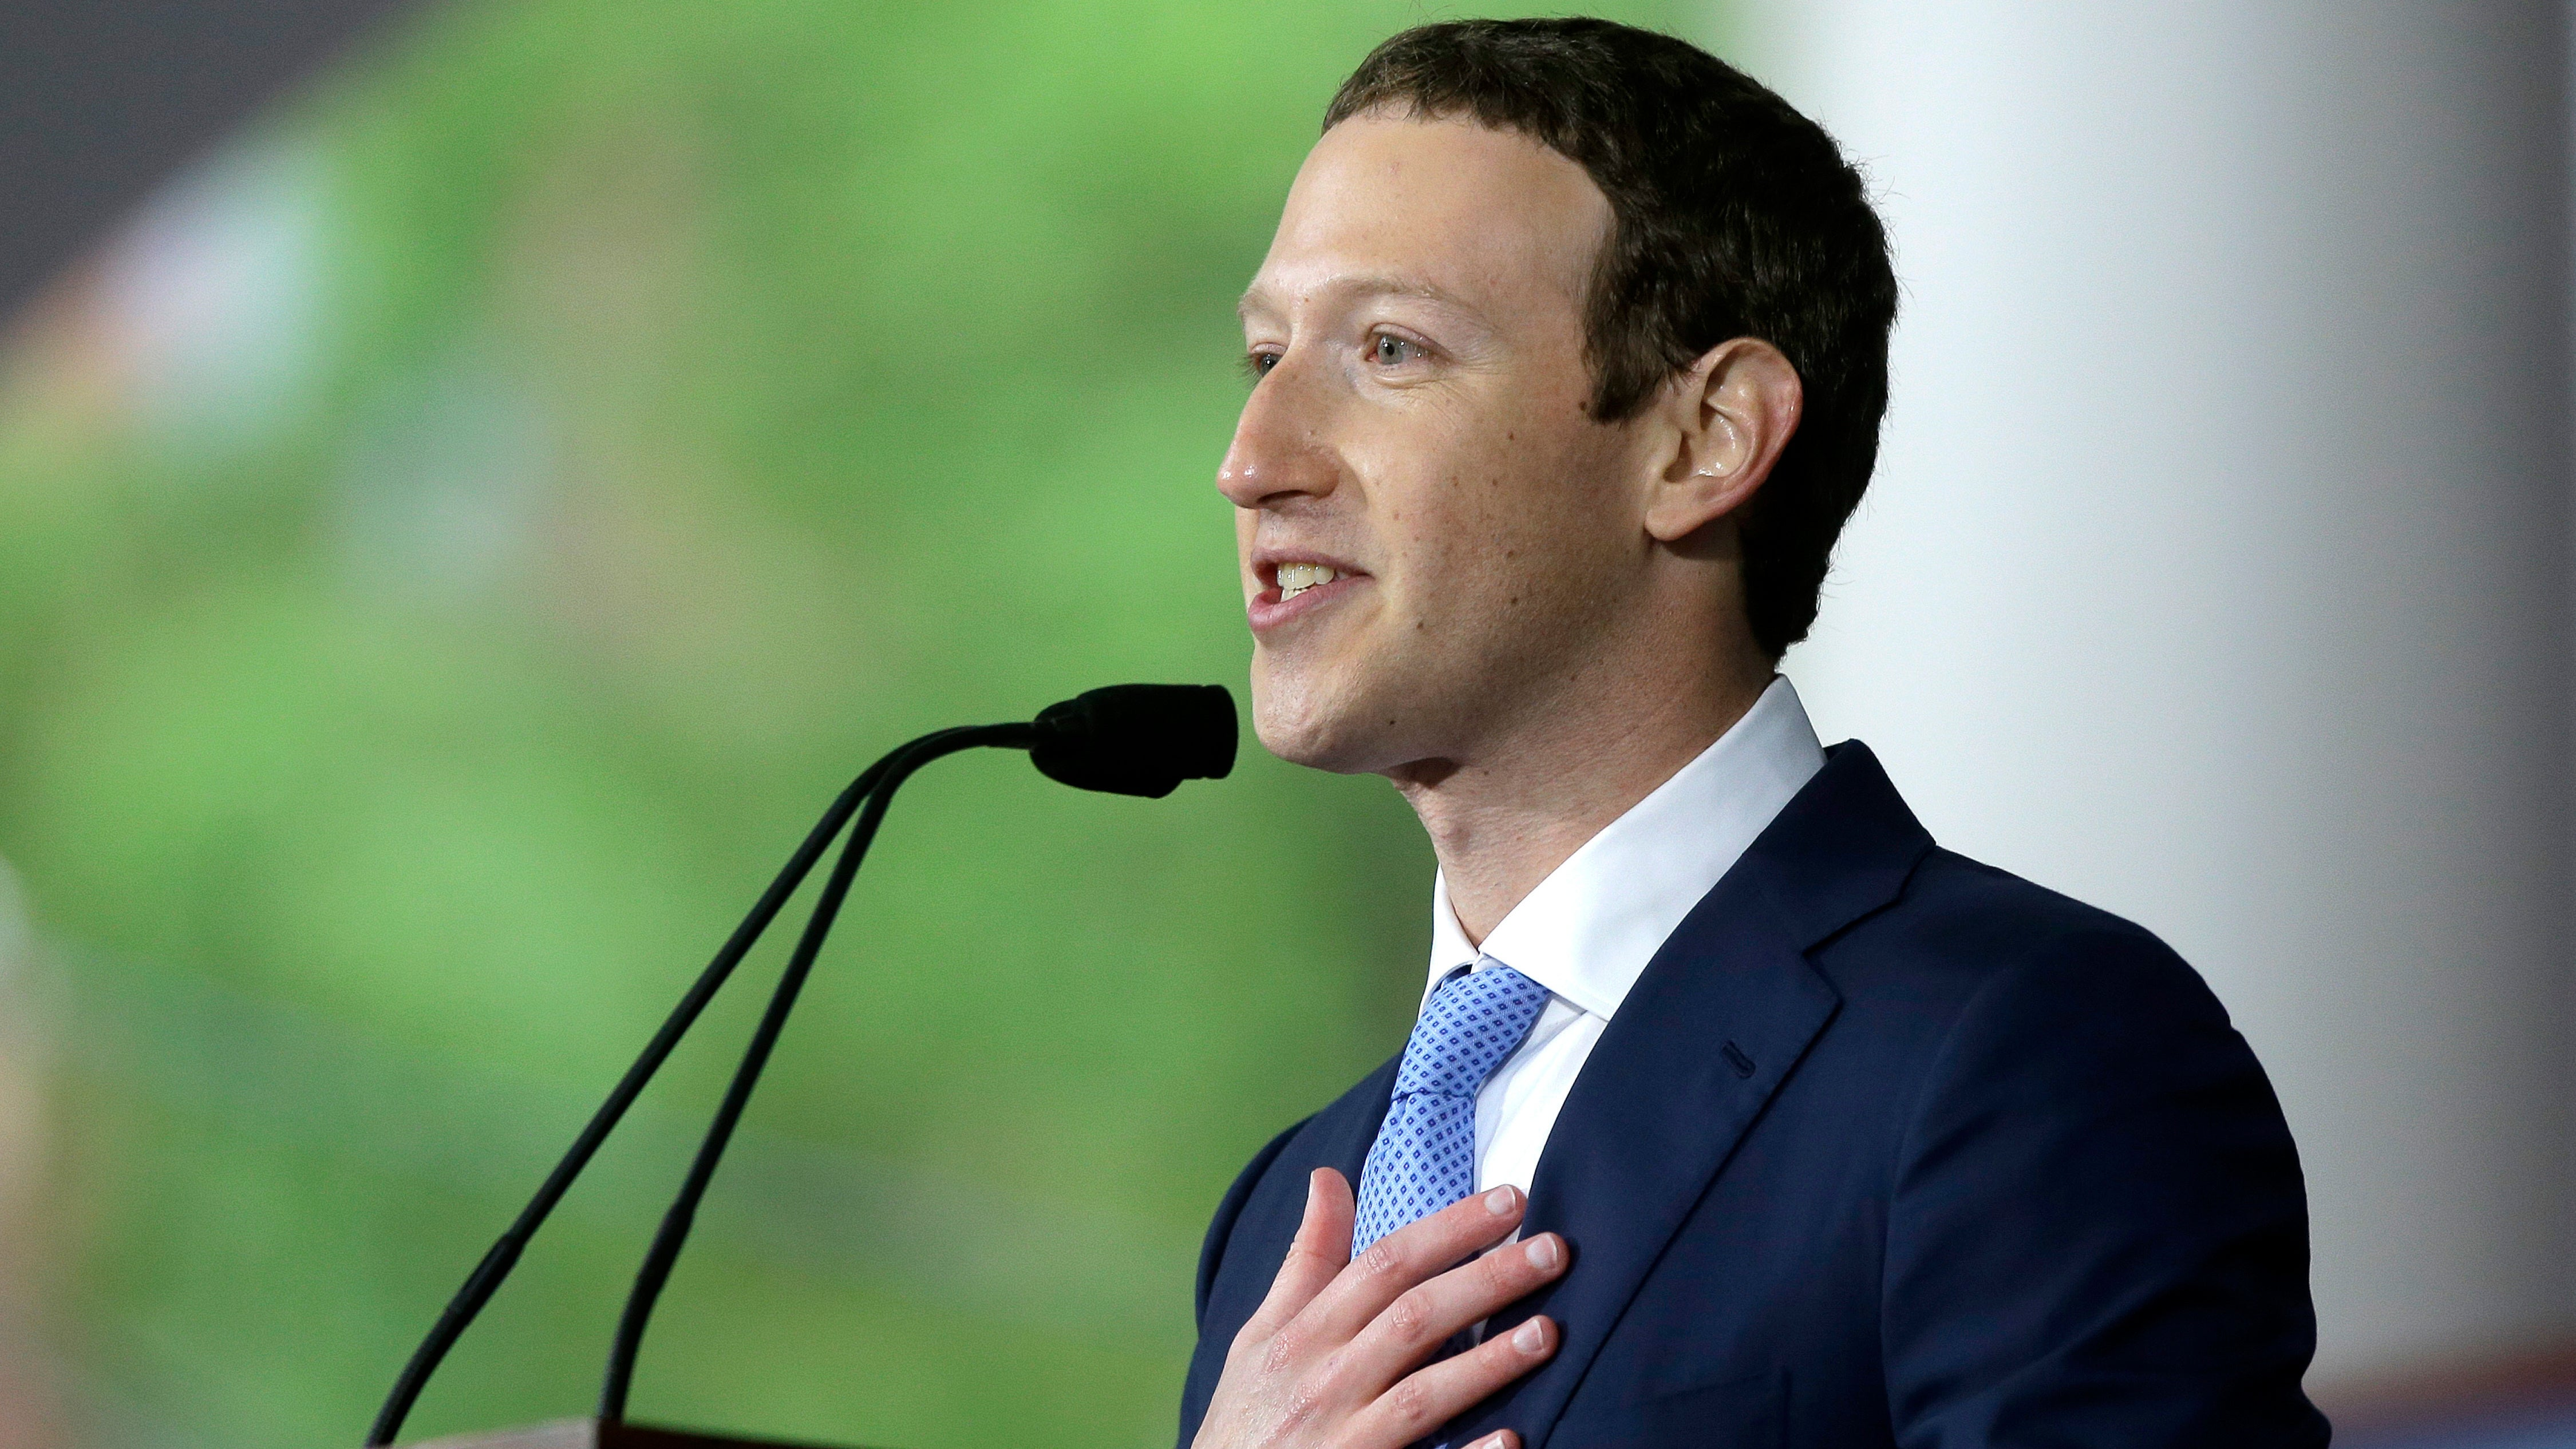 Zuckerberg's Full-Page Newspaper Ads On Facebook Data Scandal: 'We Expect There Are Others'